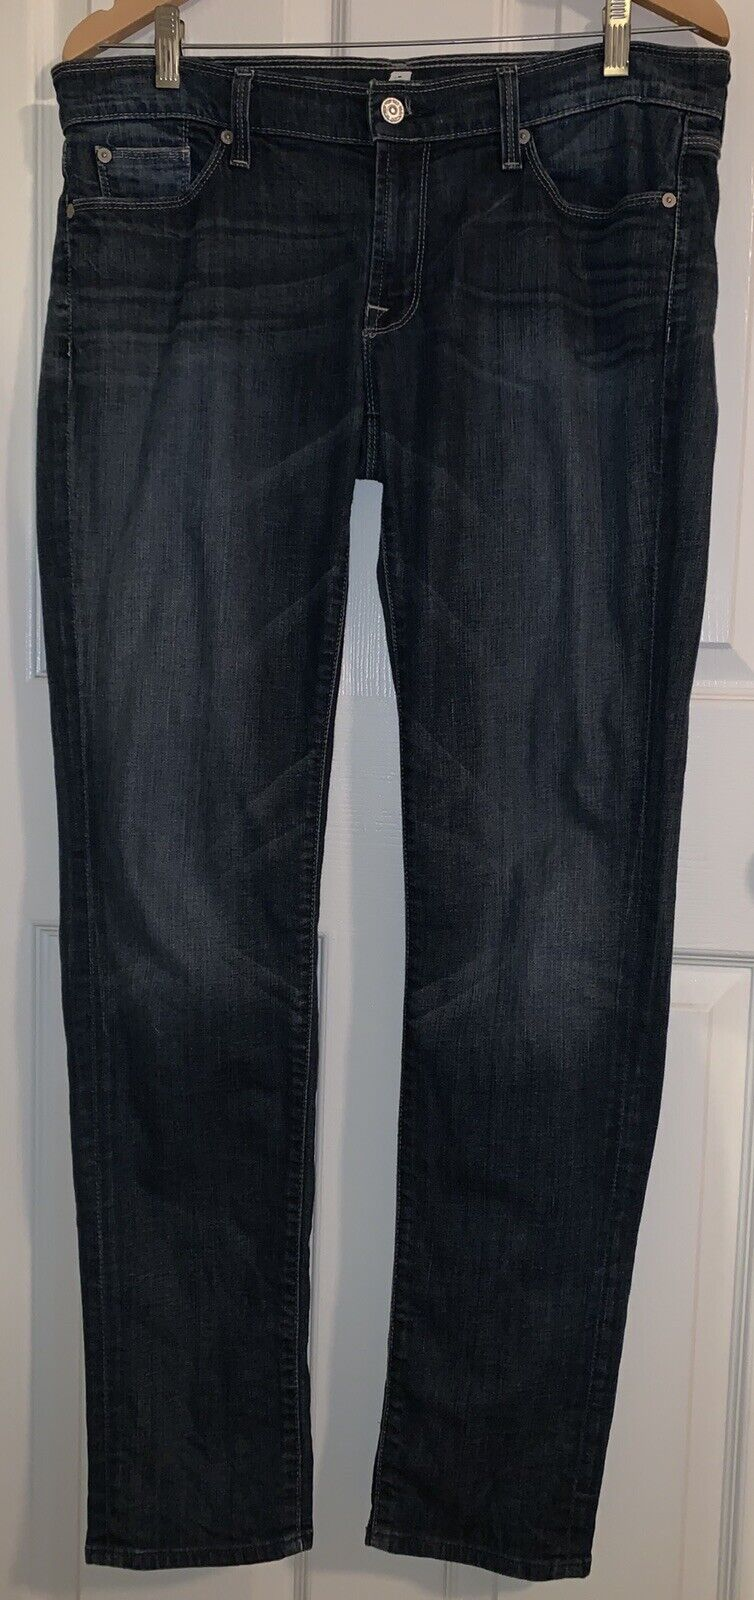 7 For All Mankind Roxanne Straight Skinny Mid rise Jeans Size 31